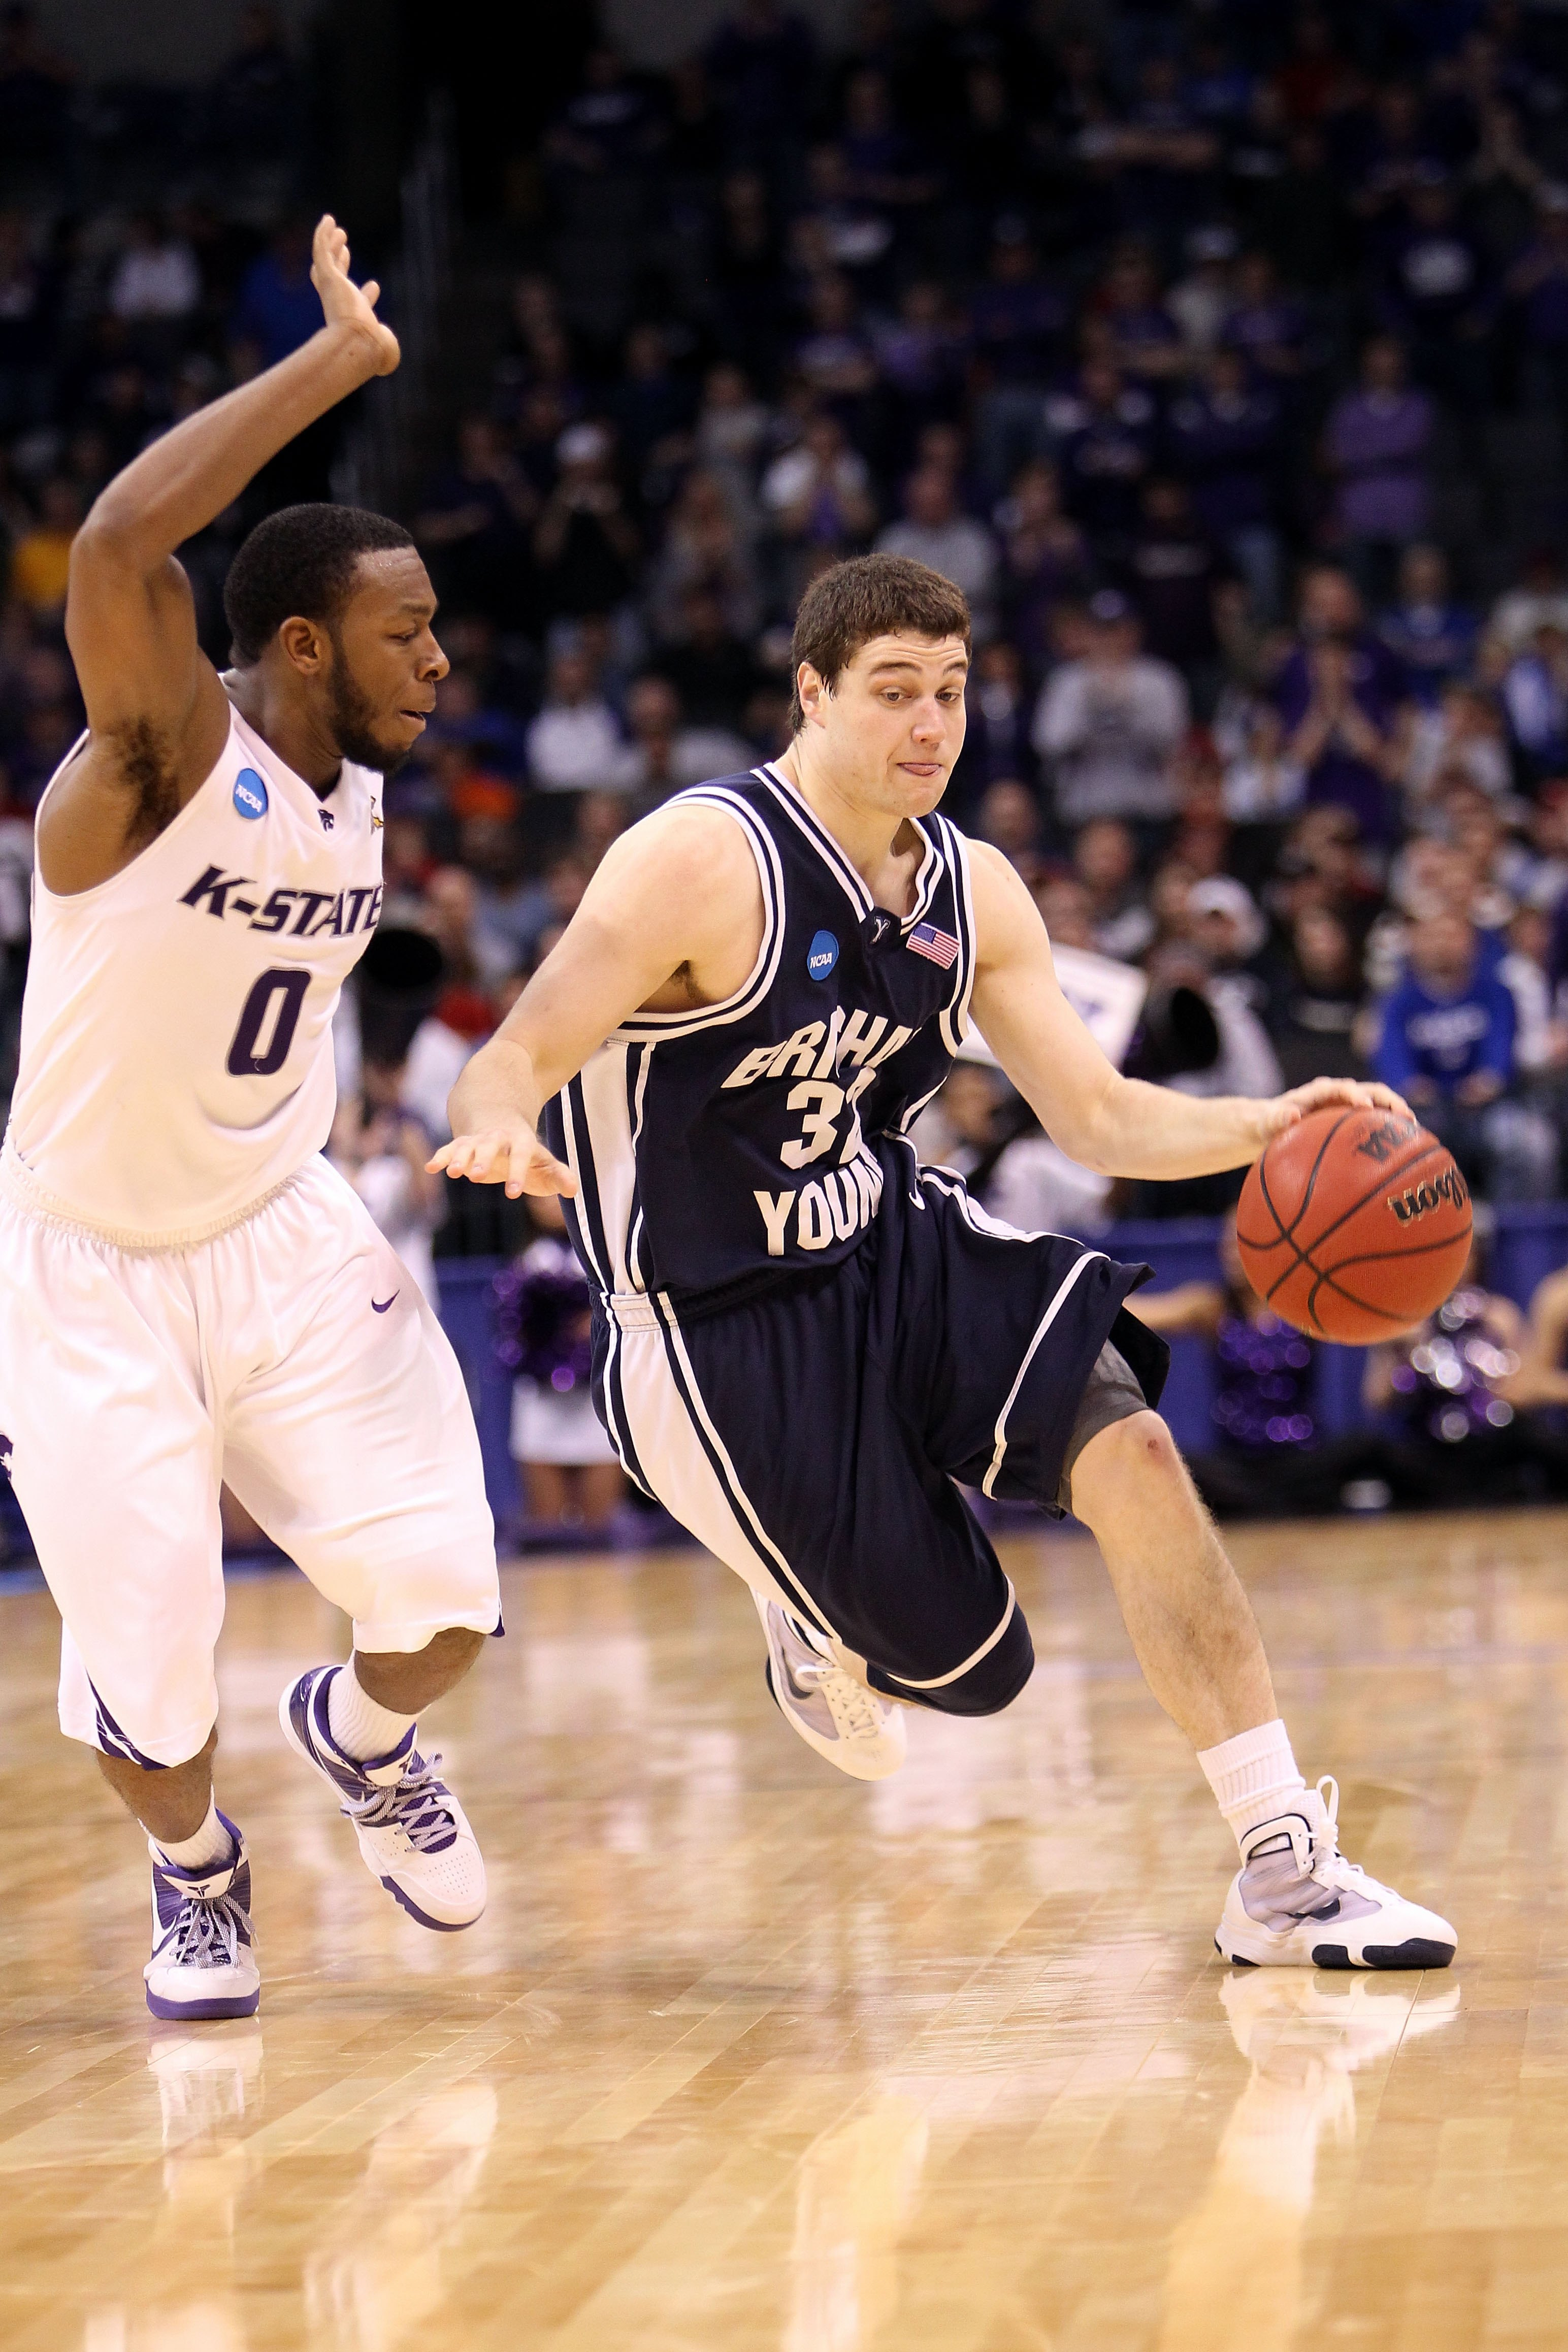 OKLAHOMA CITY - MARCH 20:  Jimmer Fredette #32 of the Brigham Young Cougars drives against Jacob Pullen #0 of the Kansas State Wildcats during the second round of the 2010 NCAA men's basketball tournament at Ford Center on March 20, 2010 in Oklahoma City,